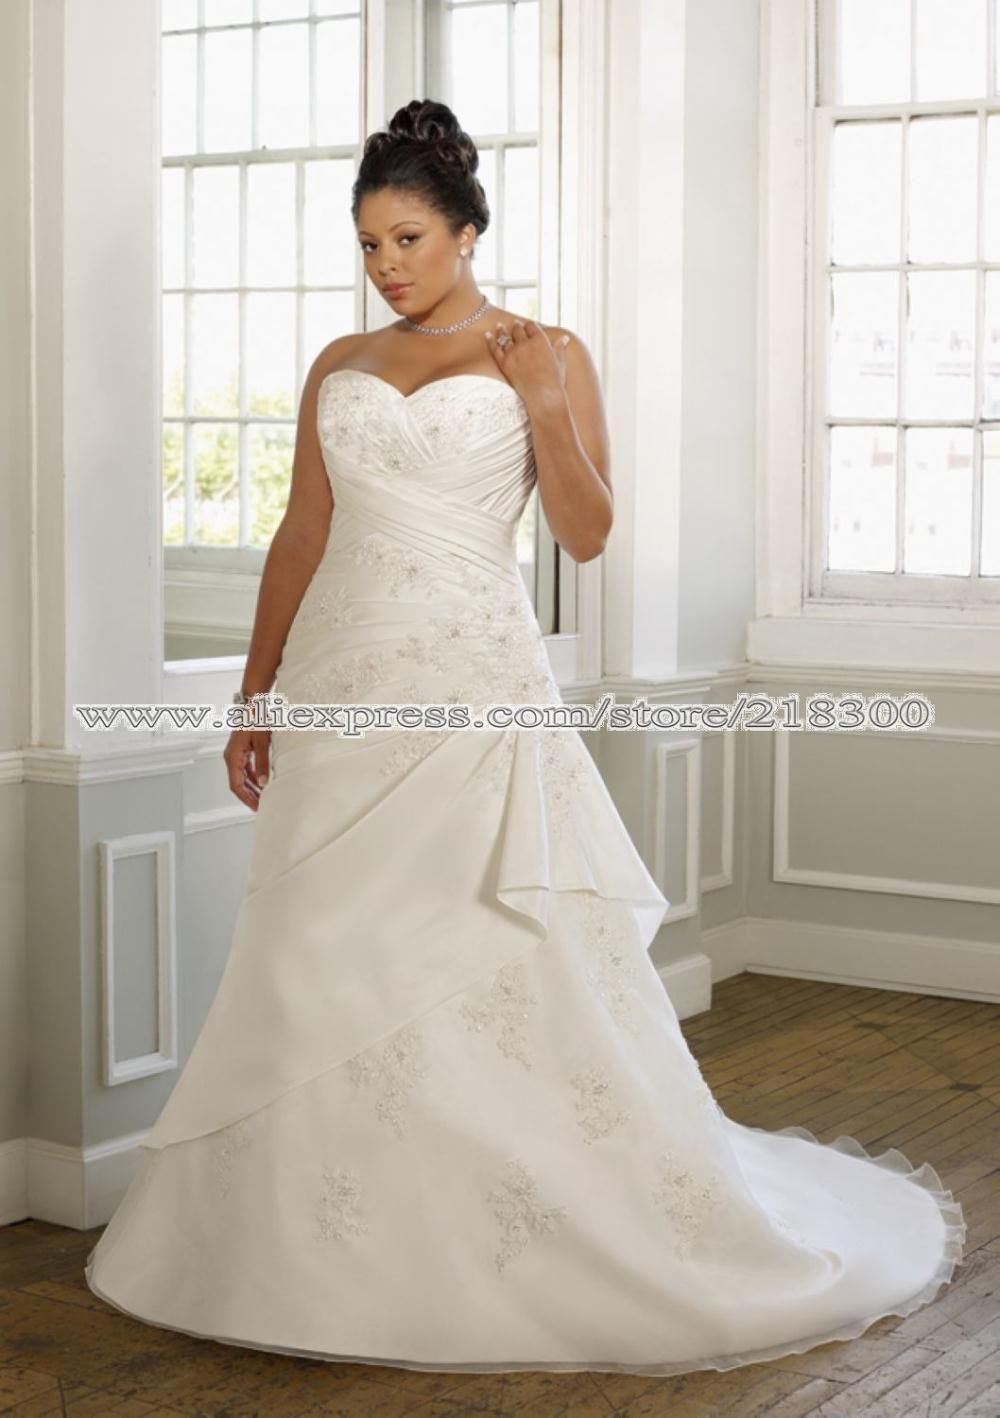 wedding dresses 2014 full figure organza - Google Search